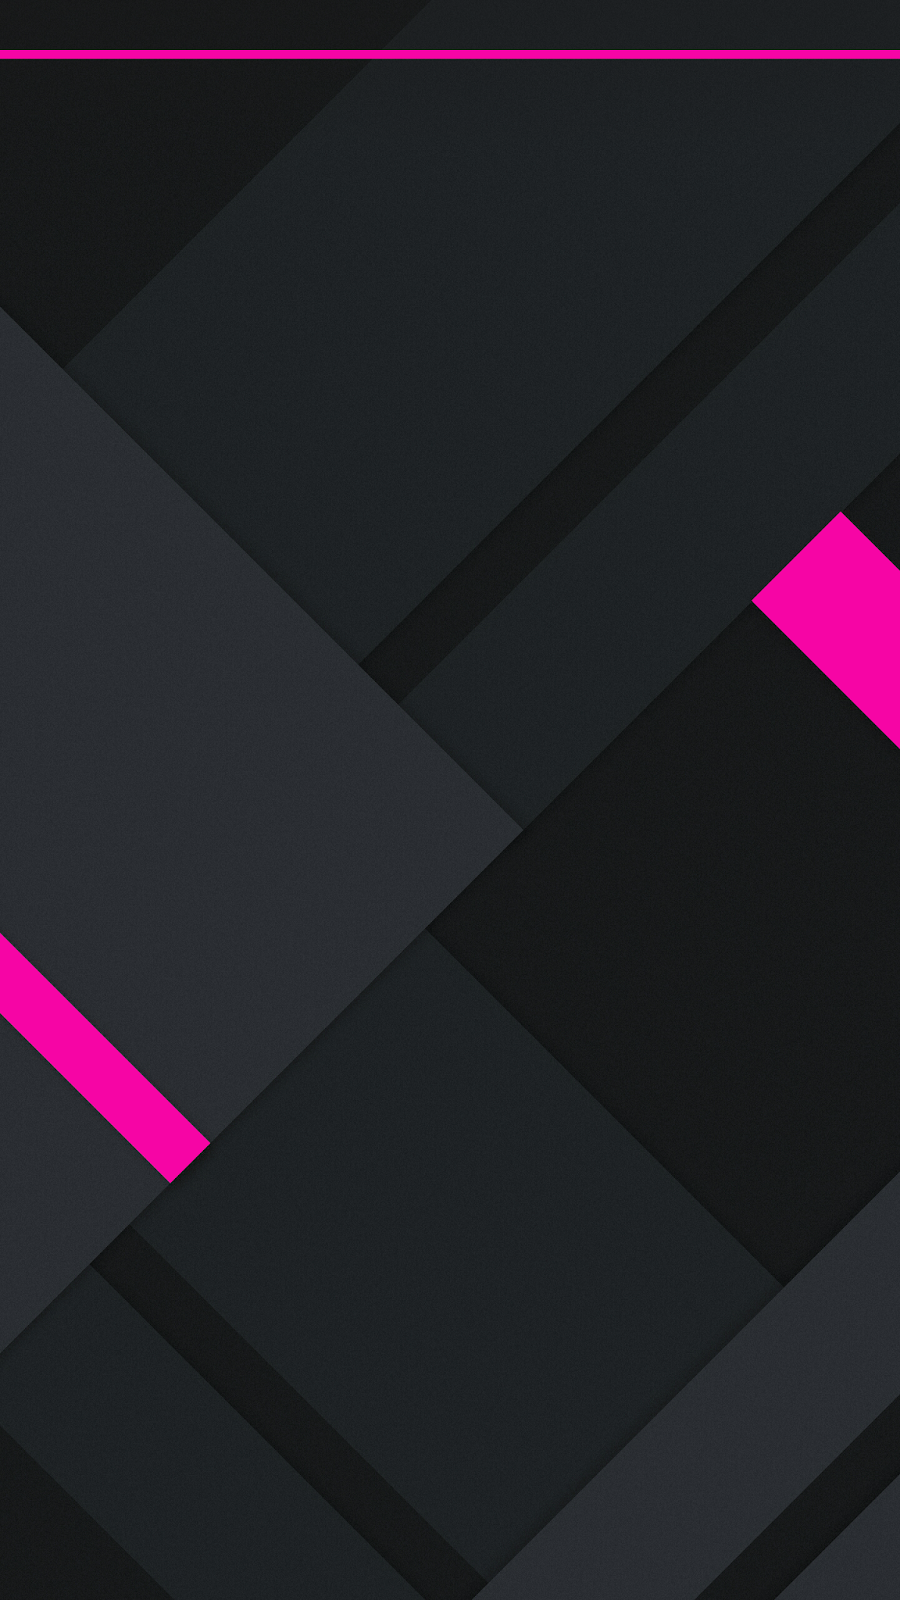 Black And Pink Pattern Wallpaper Phone Wallpaper Images Pattern Wallpaper Minimal Wallpaper